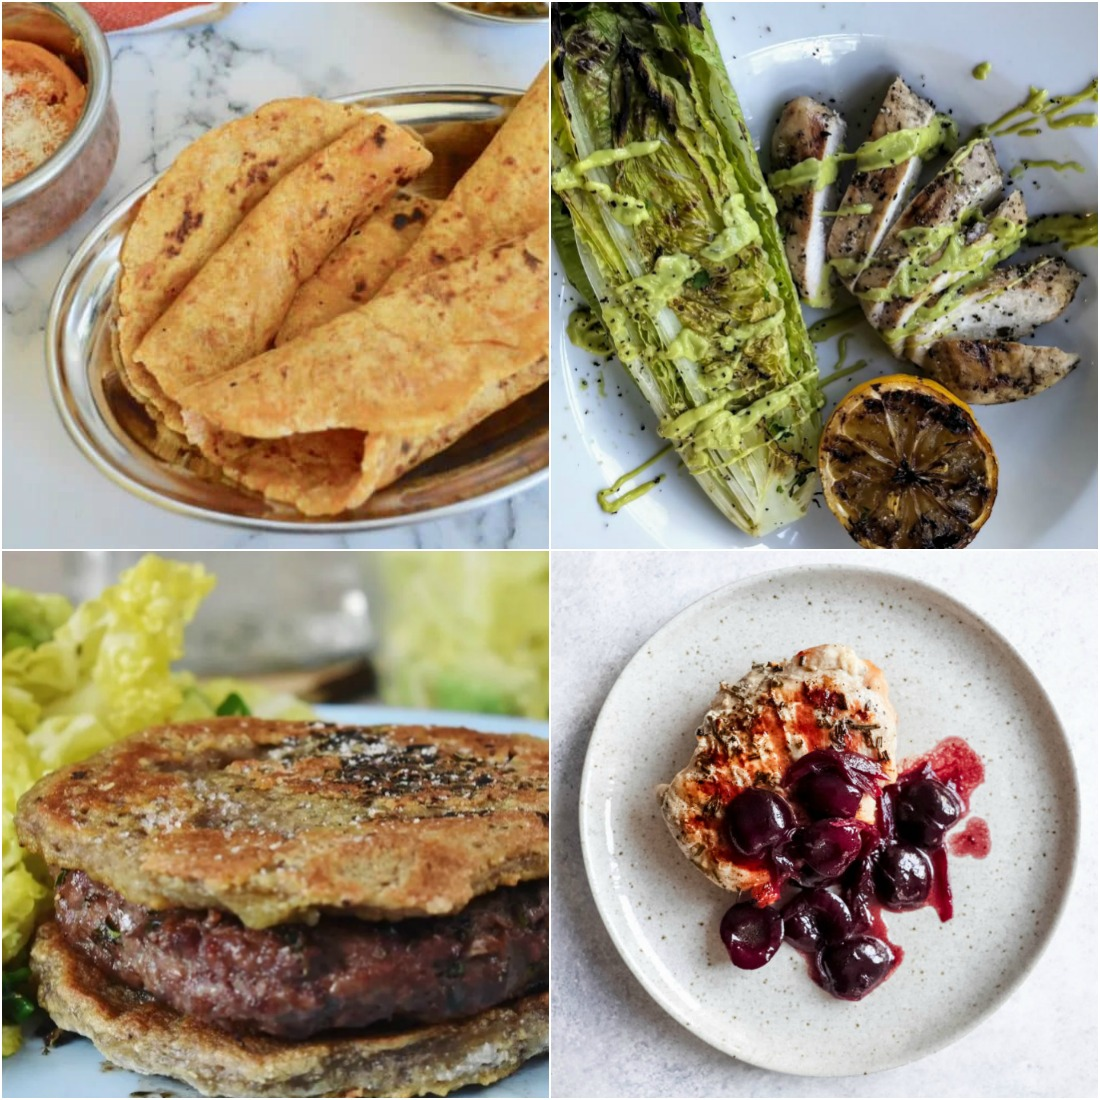 Paleo AIP Recipe Roundtable #328 | Phoenix Helix - *Featured Recipes: Sweet Potato Paratha (Flatbread), Beef Burger, Grilled Chicken & Romaine with Creamy Avocado Caesar Dressing, Grilled Pork with Cherry Compote